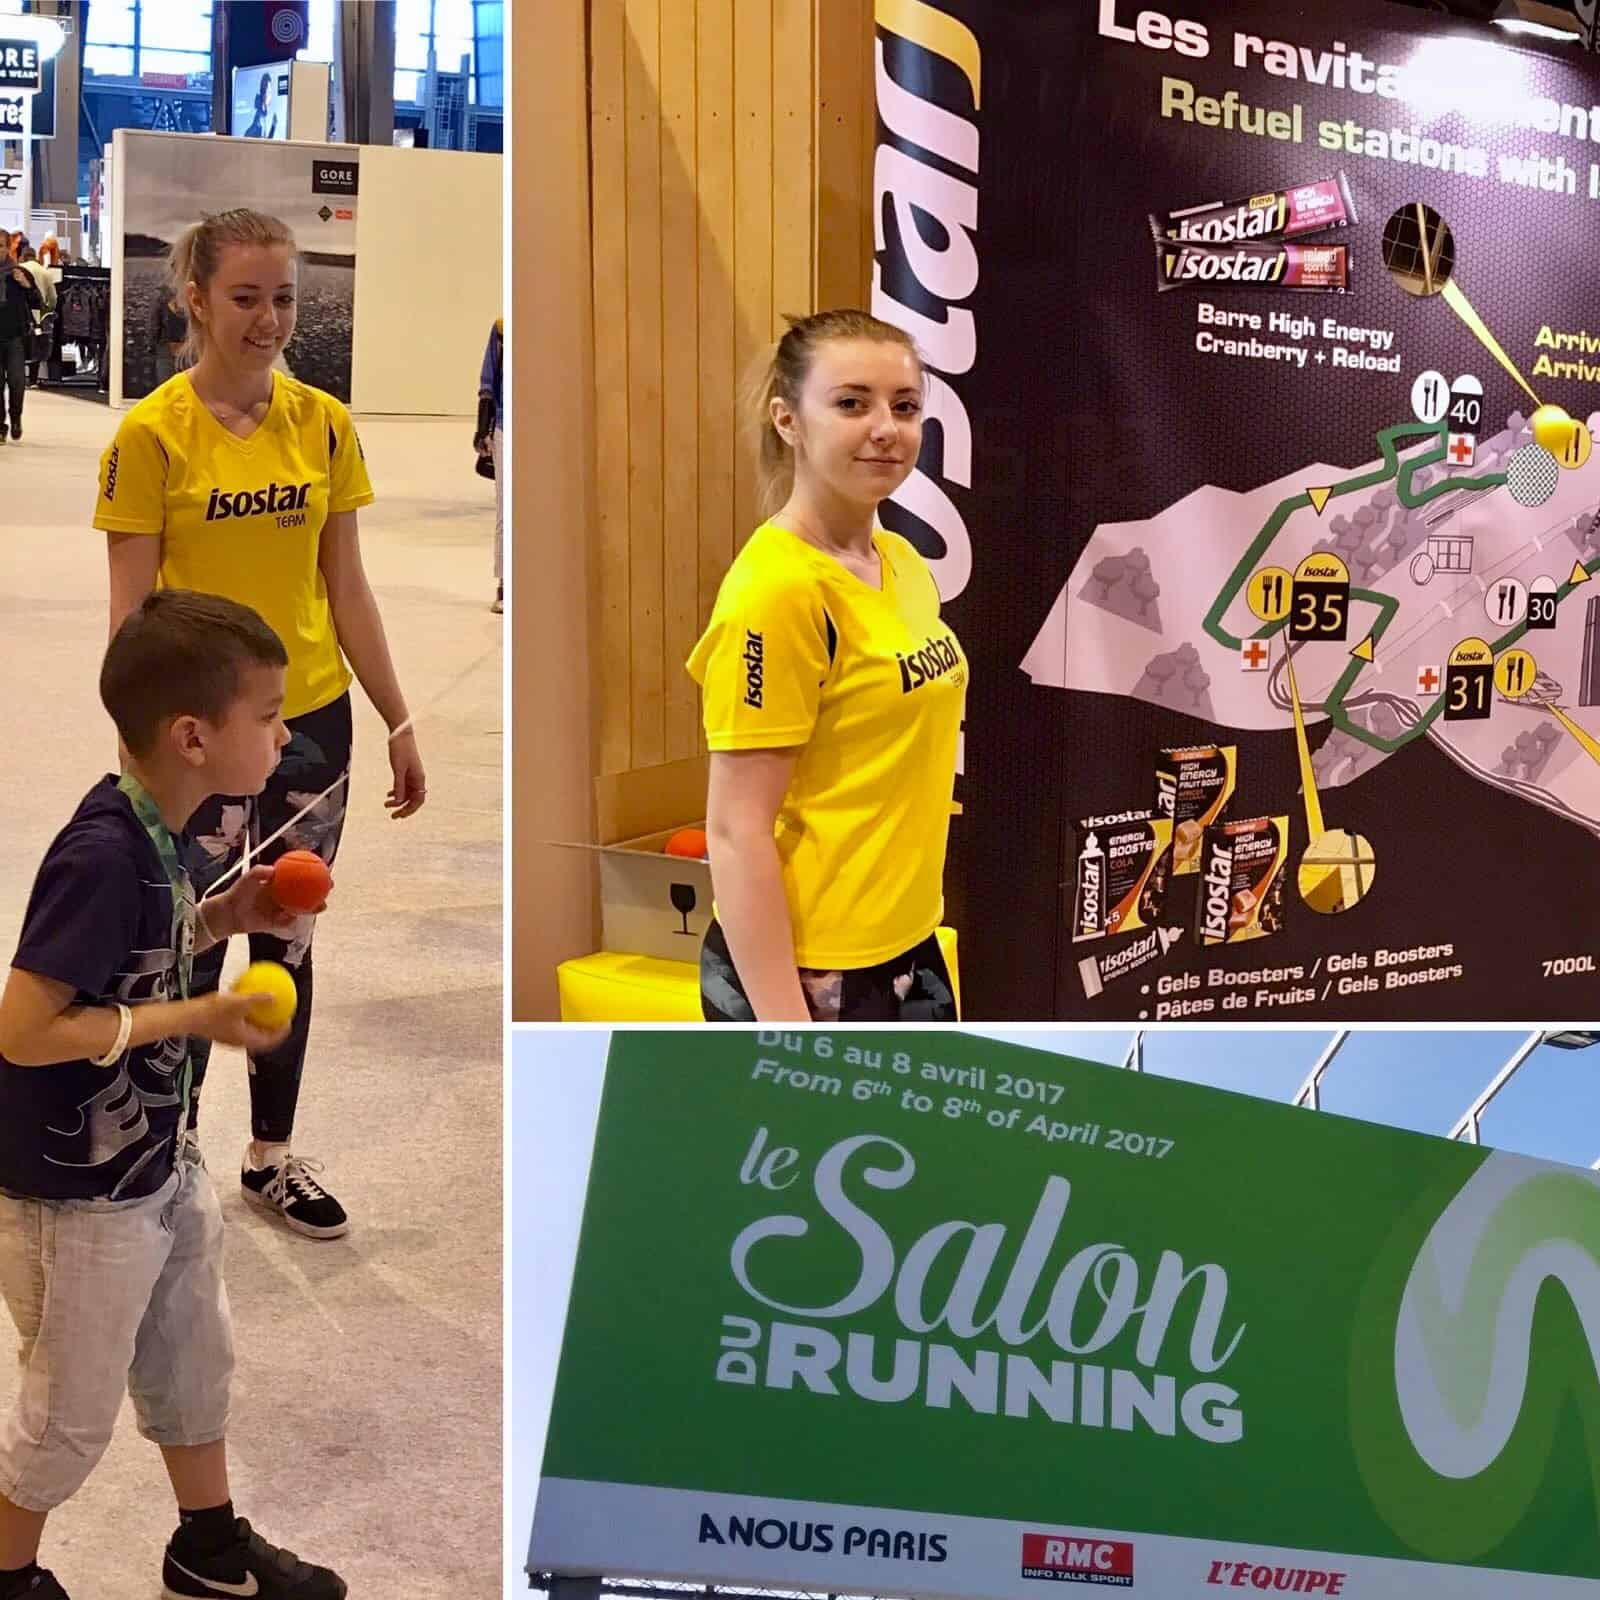 Agence d hotesse paris salon agence elegance h tesses for Porte de versailles salon du running